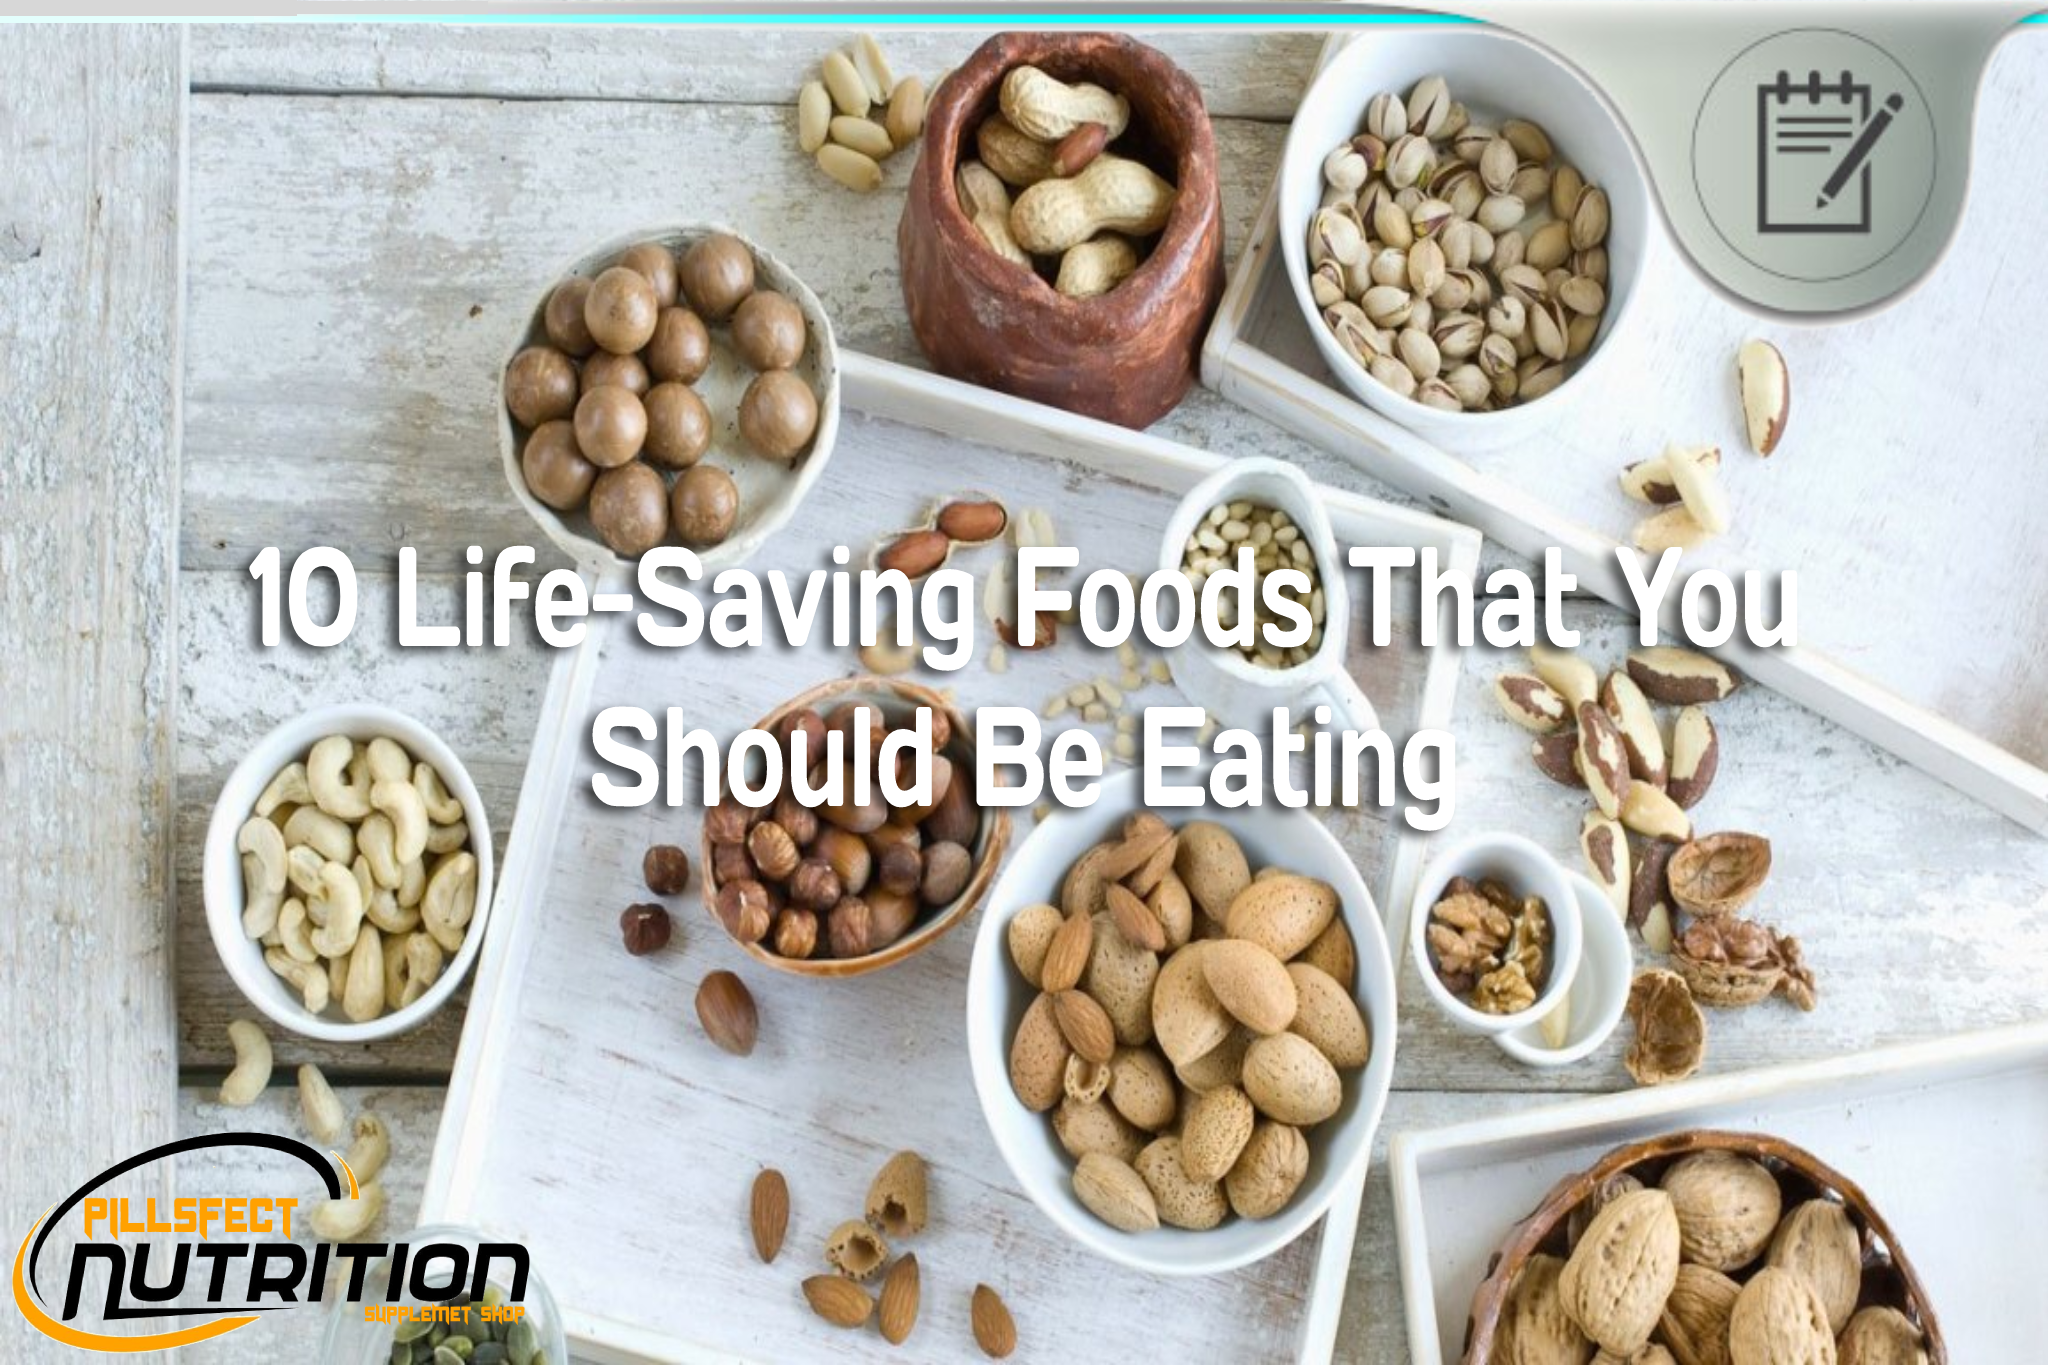 10 Life-Saving Foods That You Should Be Eating - Top 10 Eating Foods!